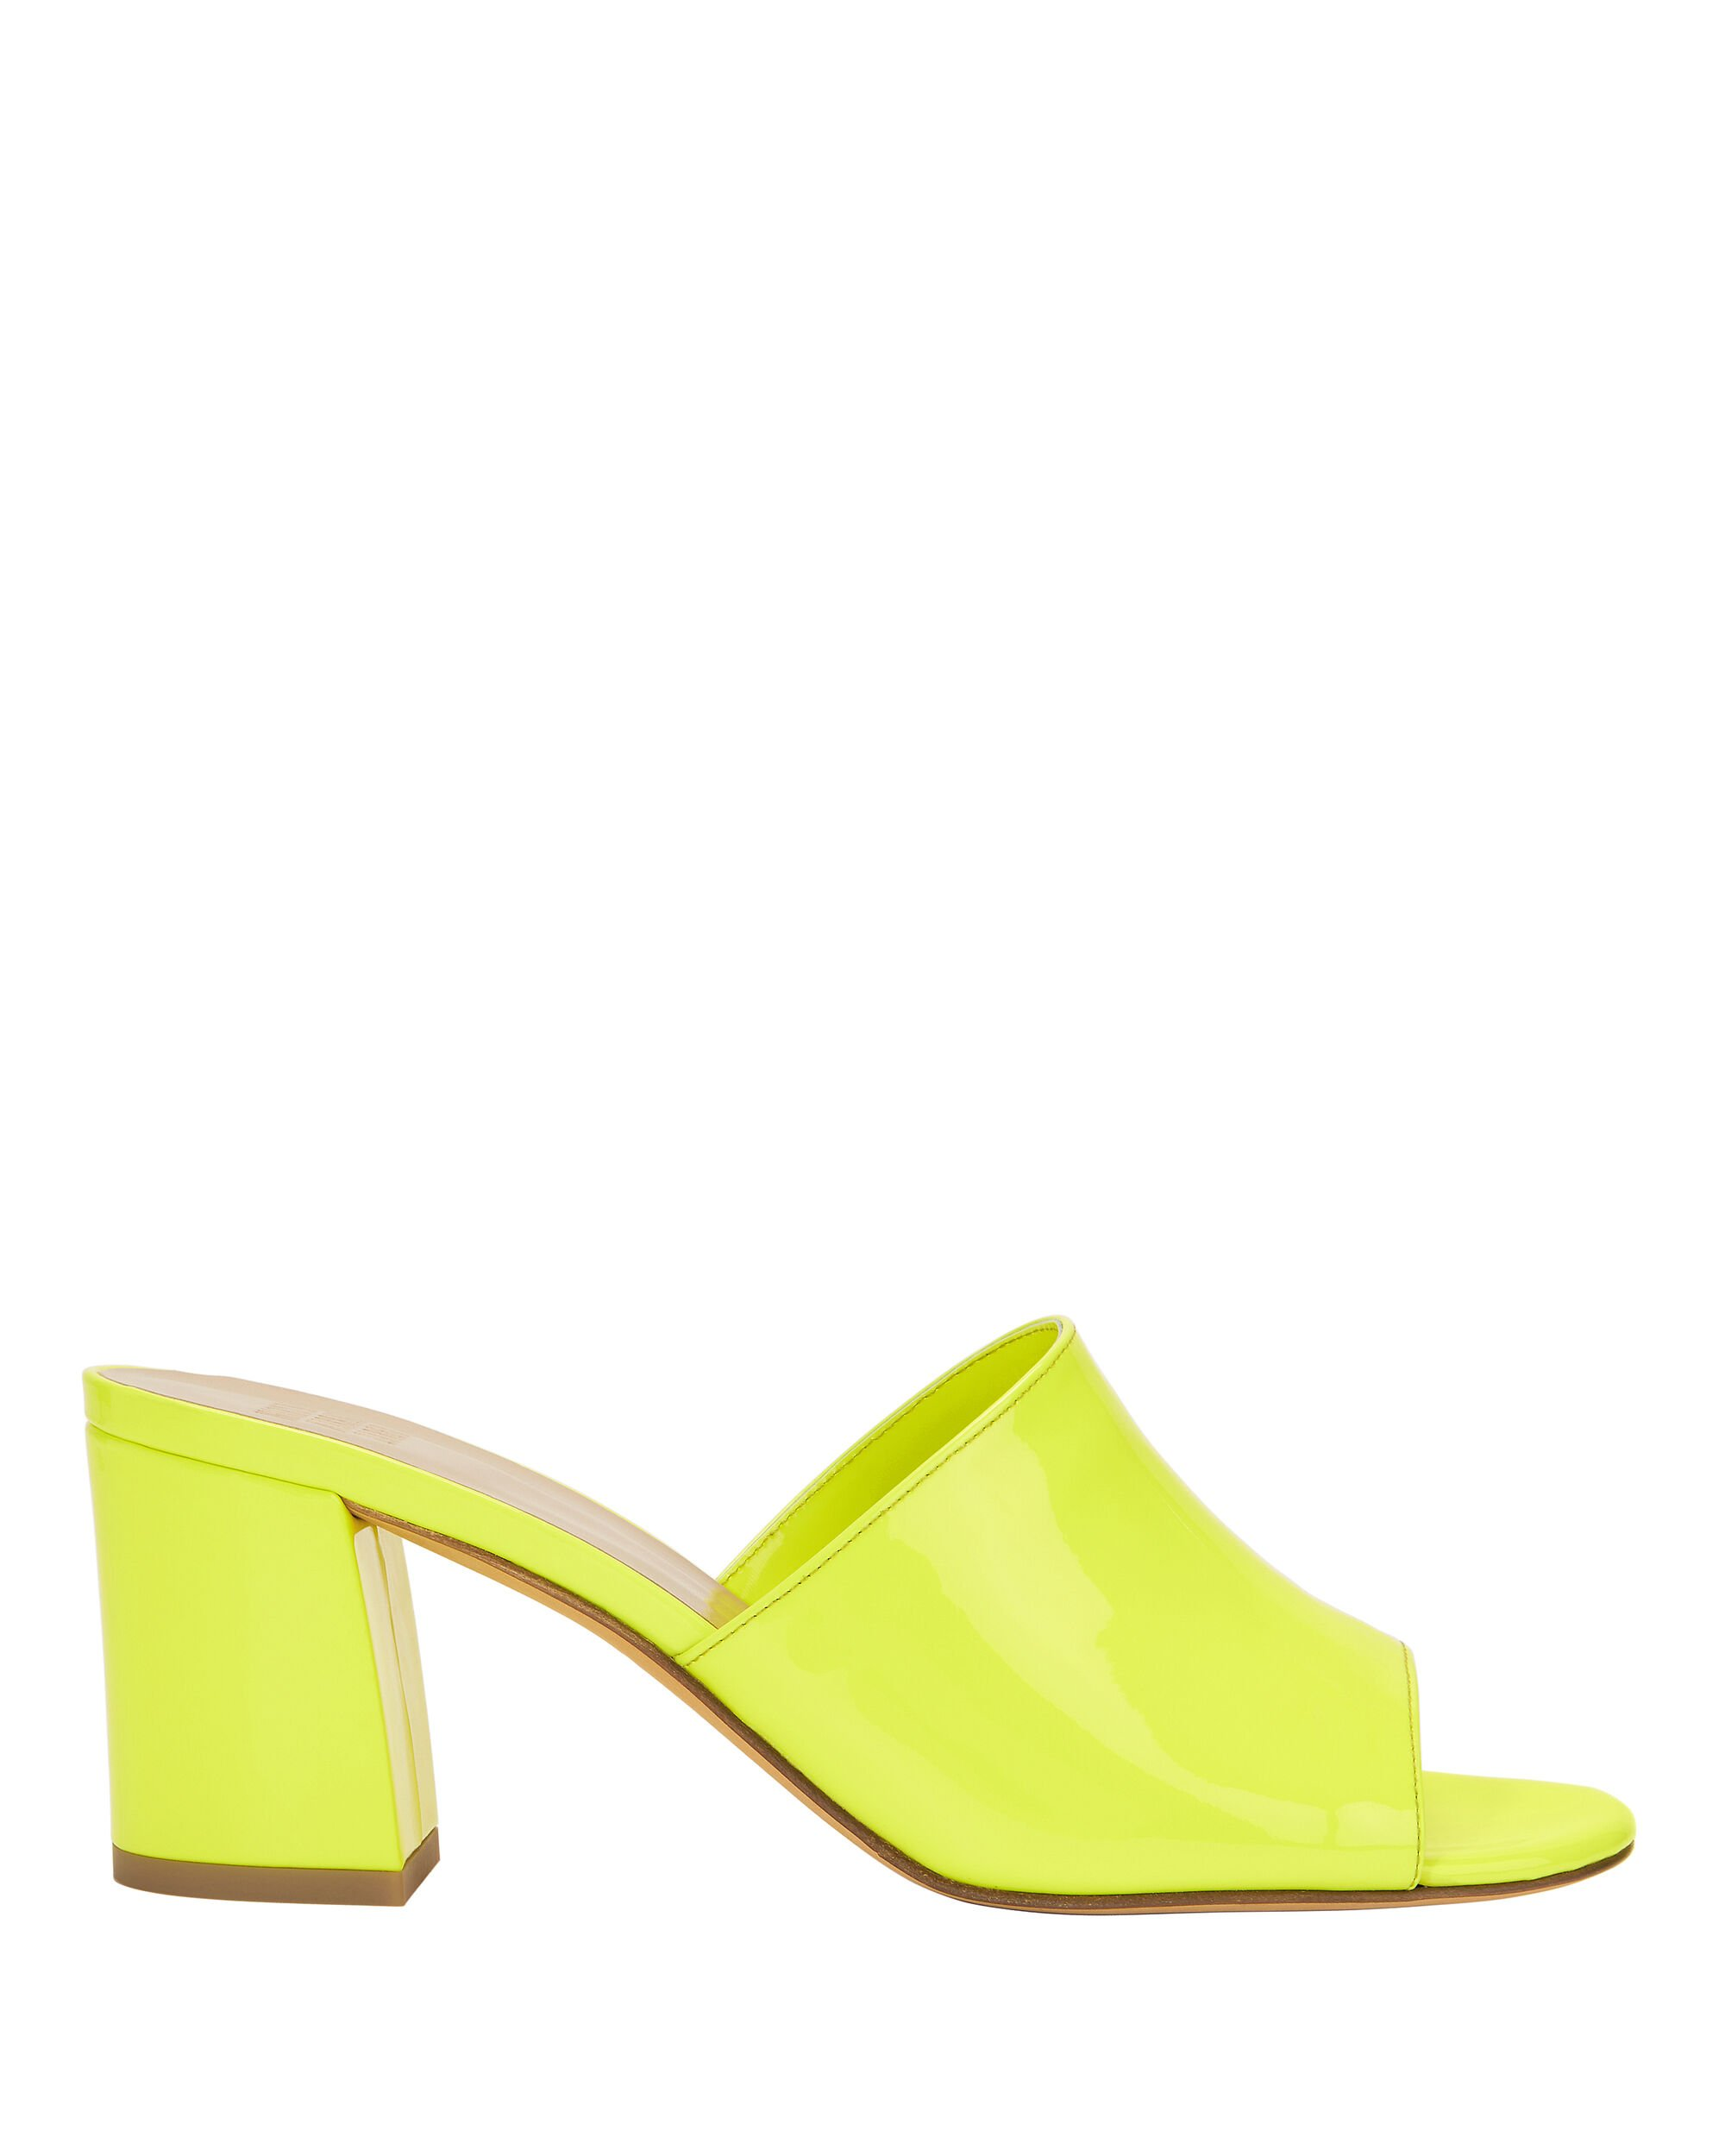 Mar Patent Yellow Leather Slides, YELLOW, hi-res